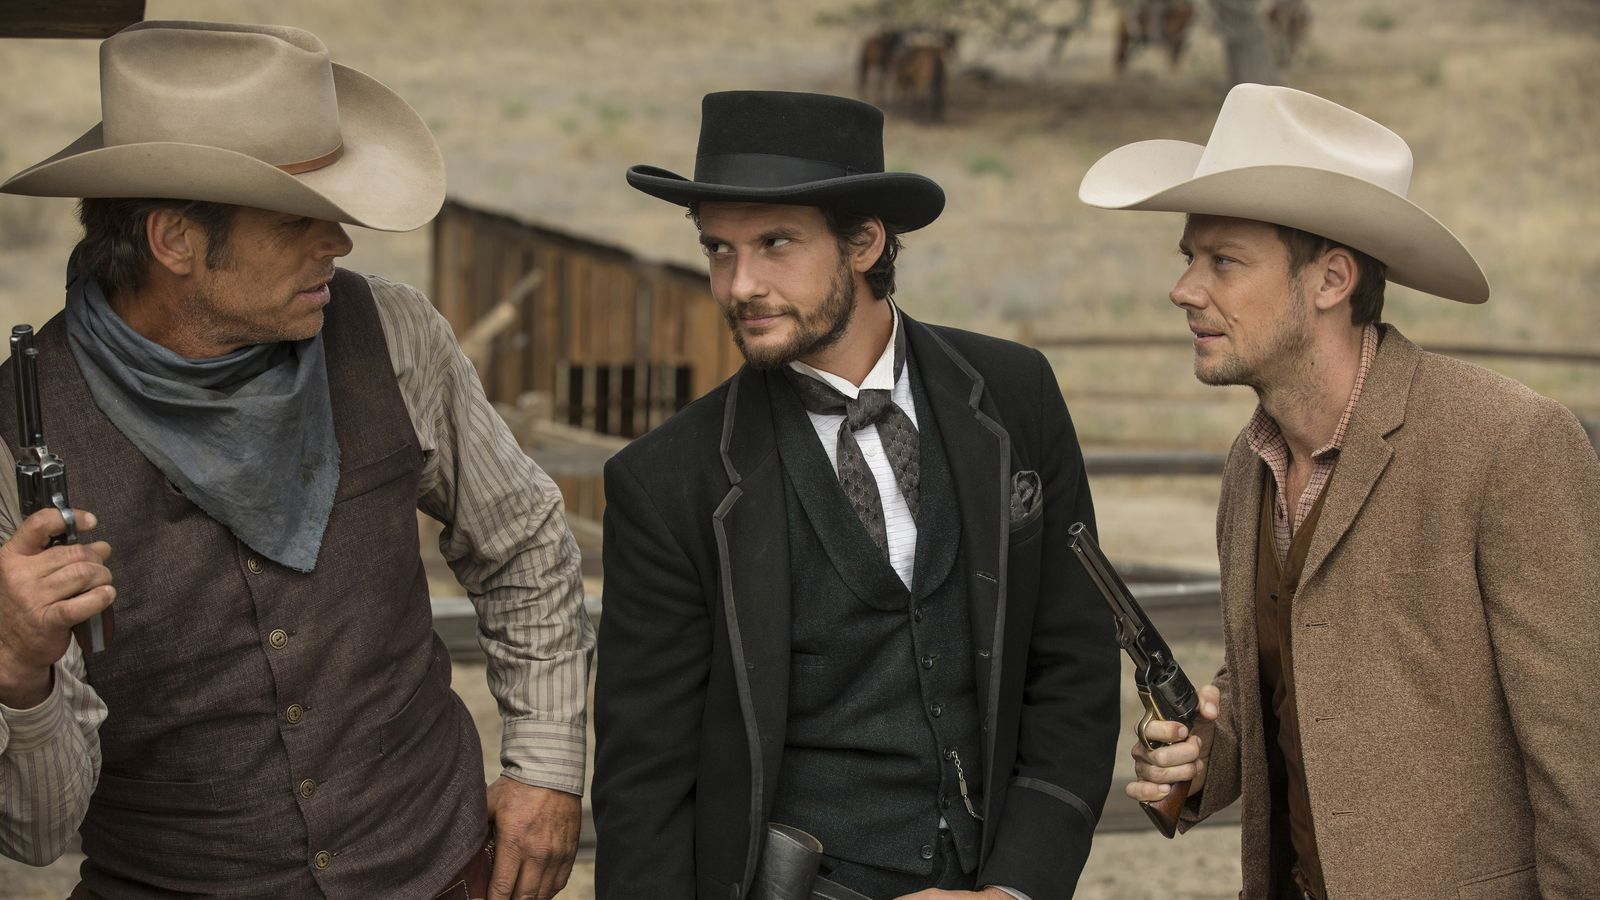 Westworld finale may have addressed where season 2 will take place